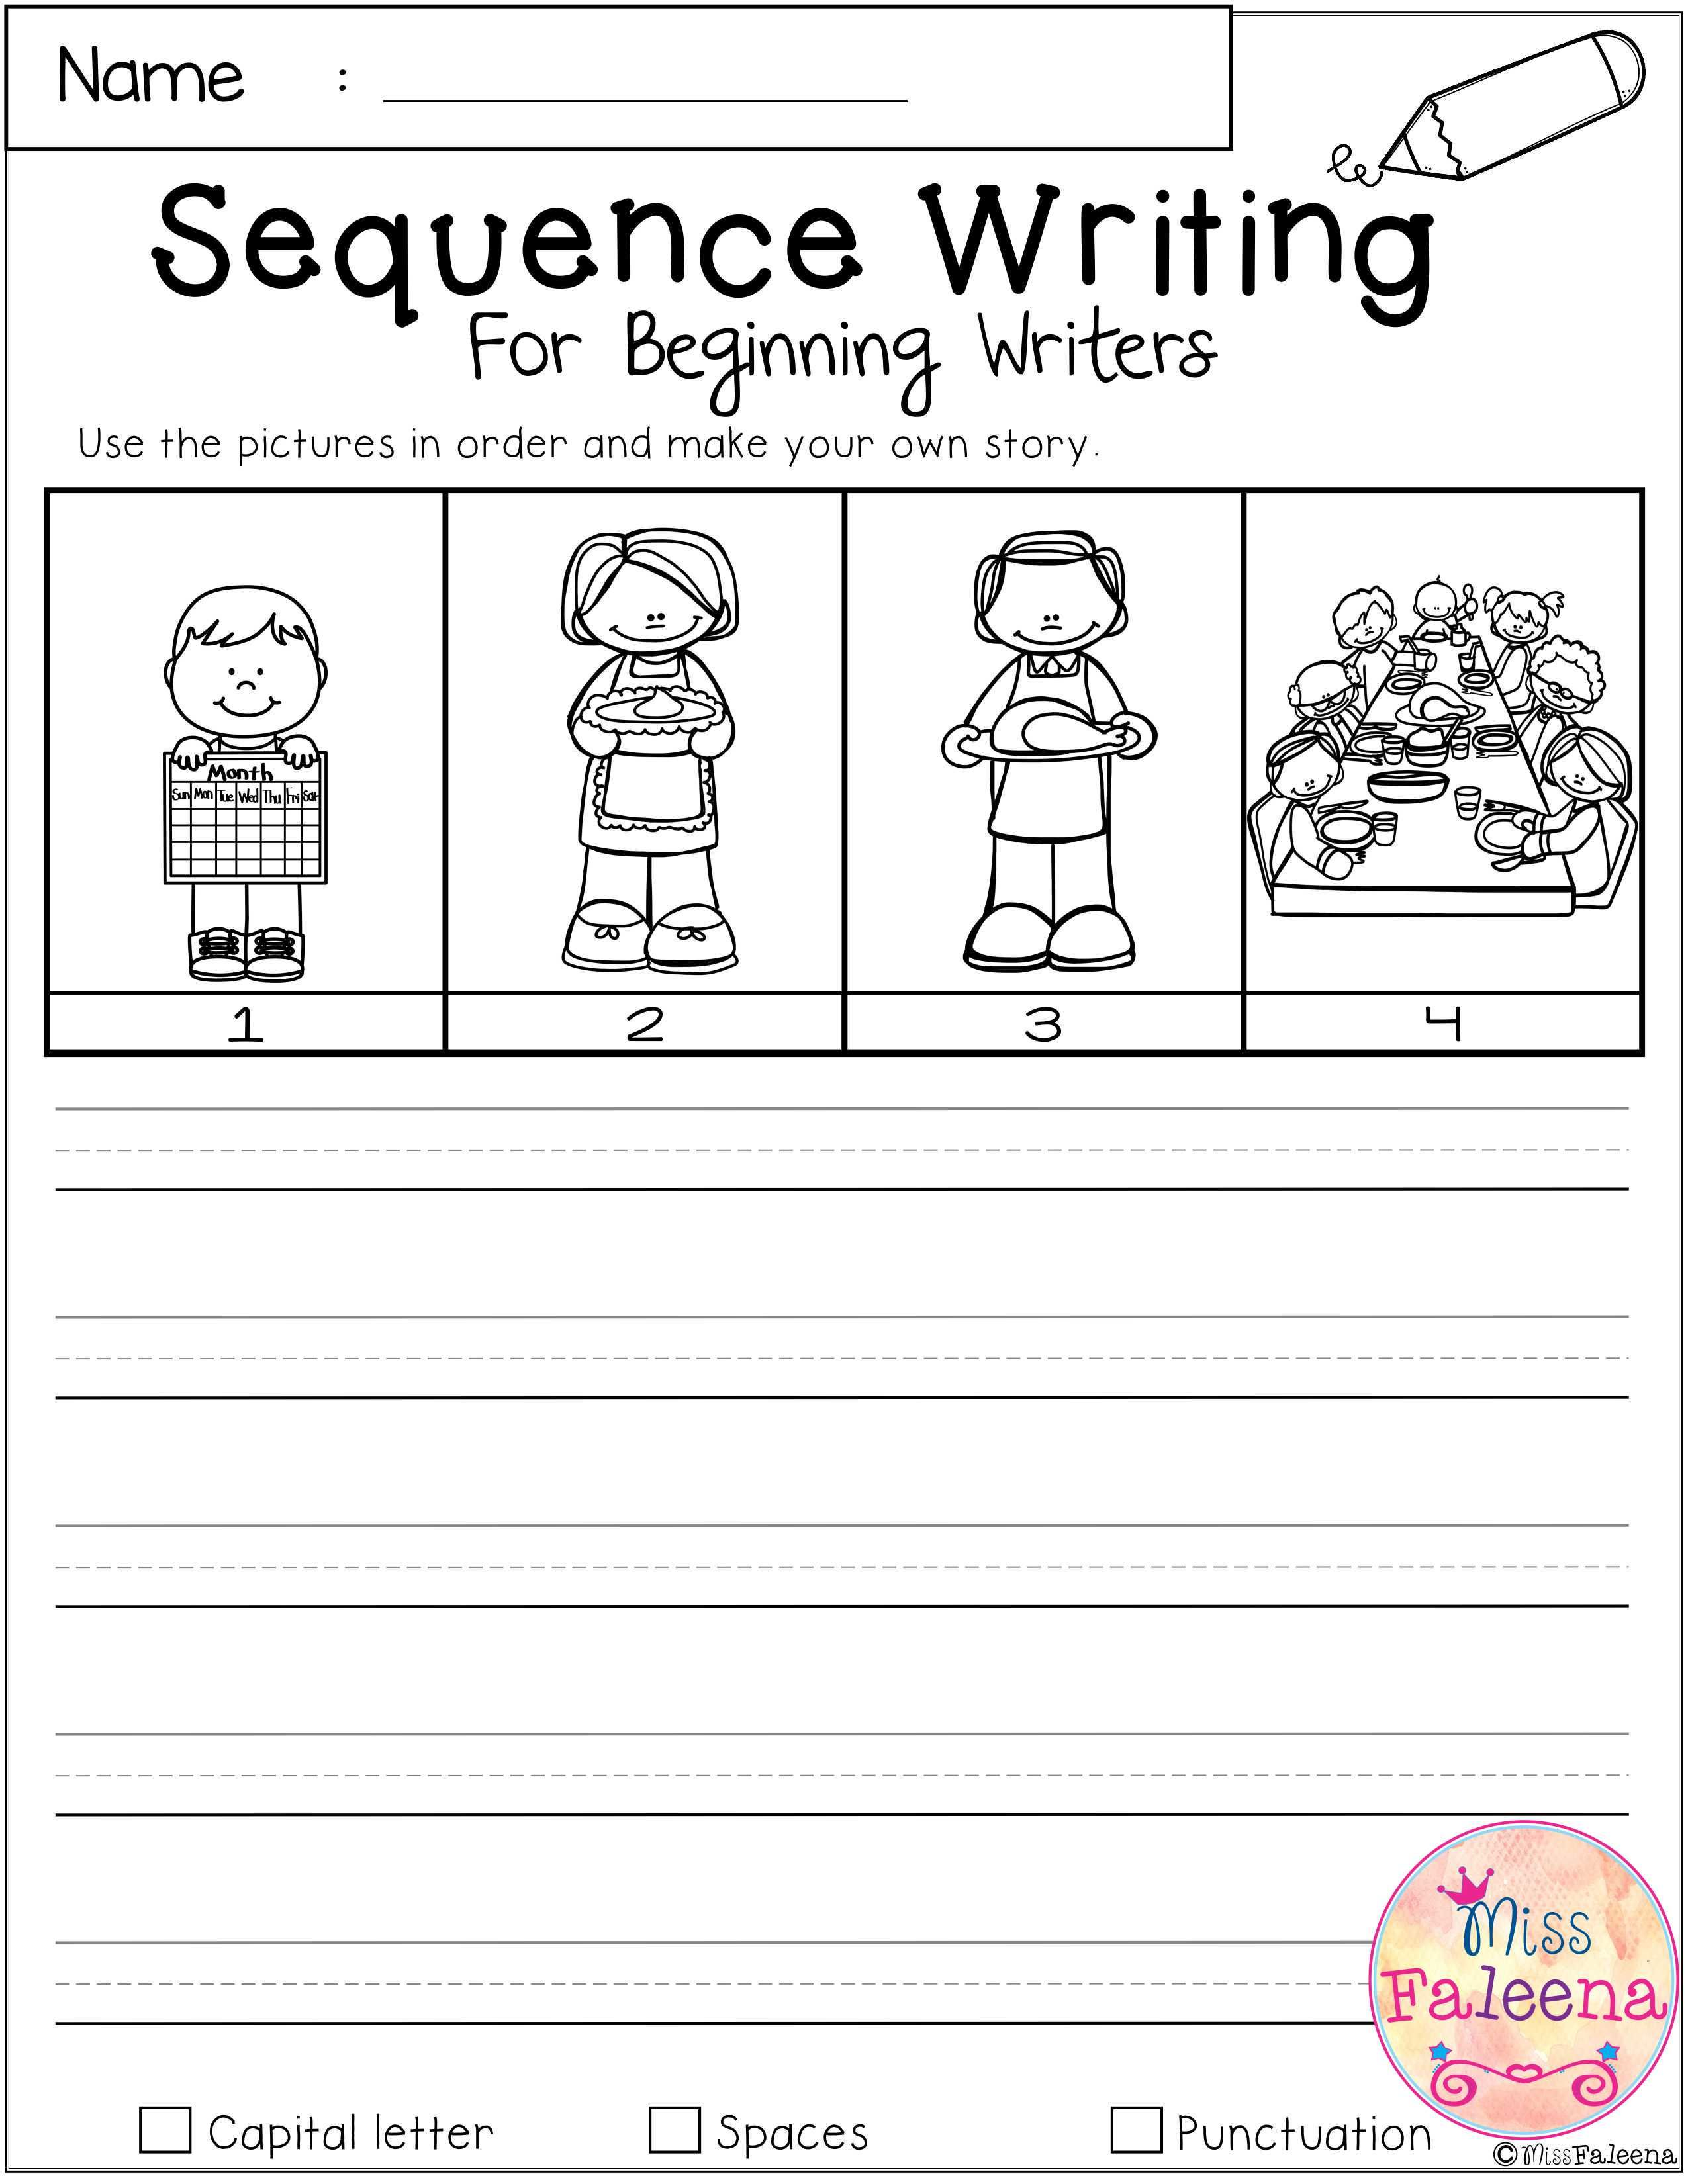 November Sequence Writing For Beginning Writers Sequence Writing Kindergarten Writing Lessons Kindergarten Writing Lesson Plans